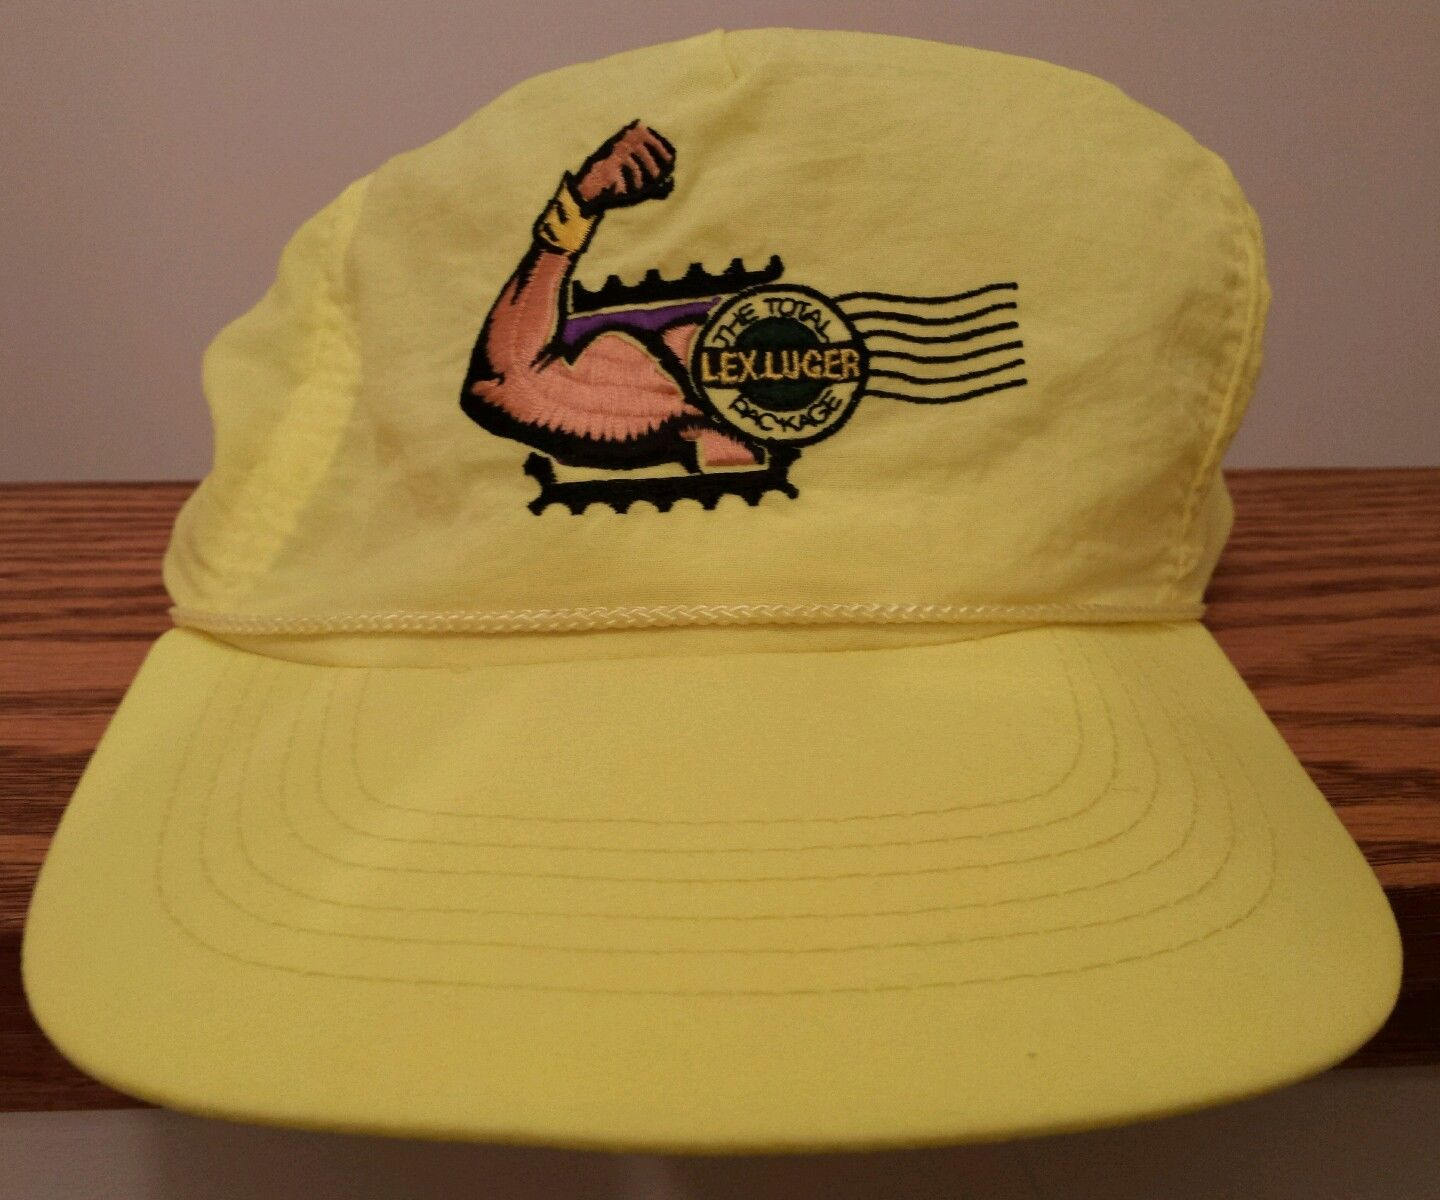 WCW Lex Luger Total Package stamp hat cap